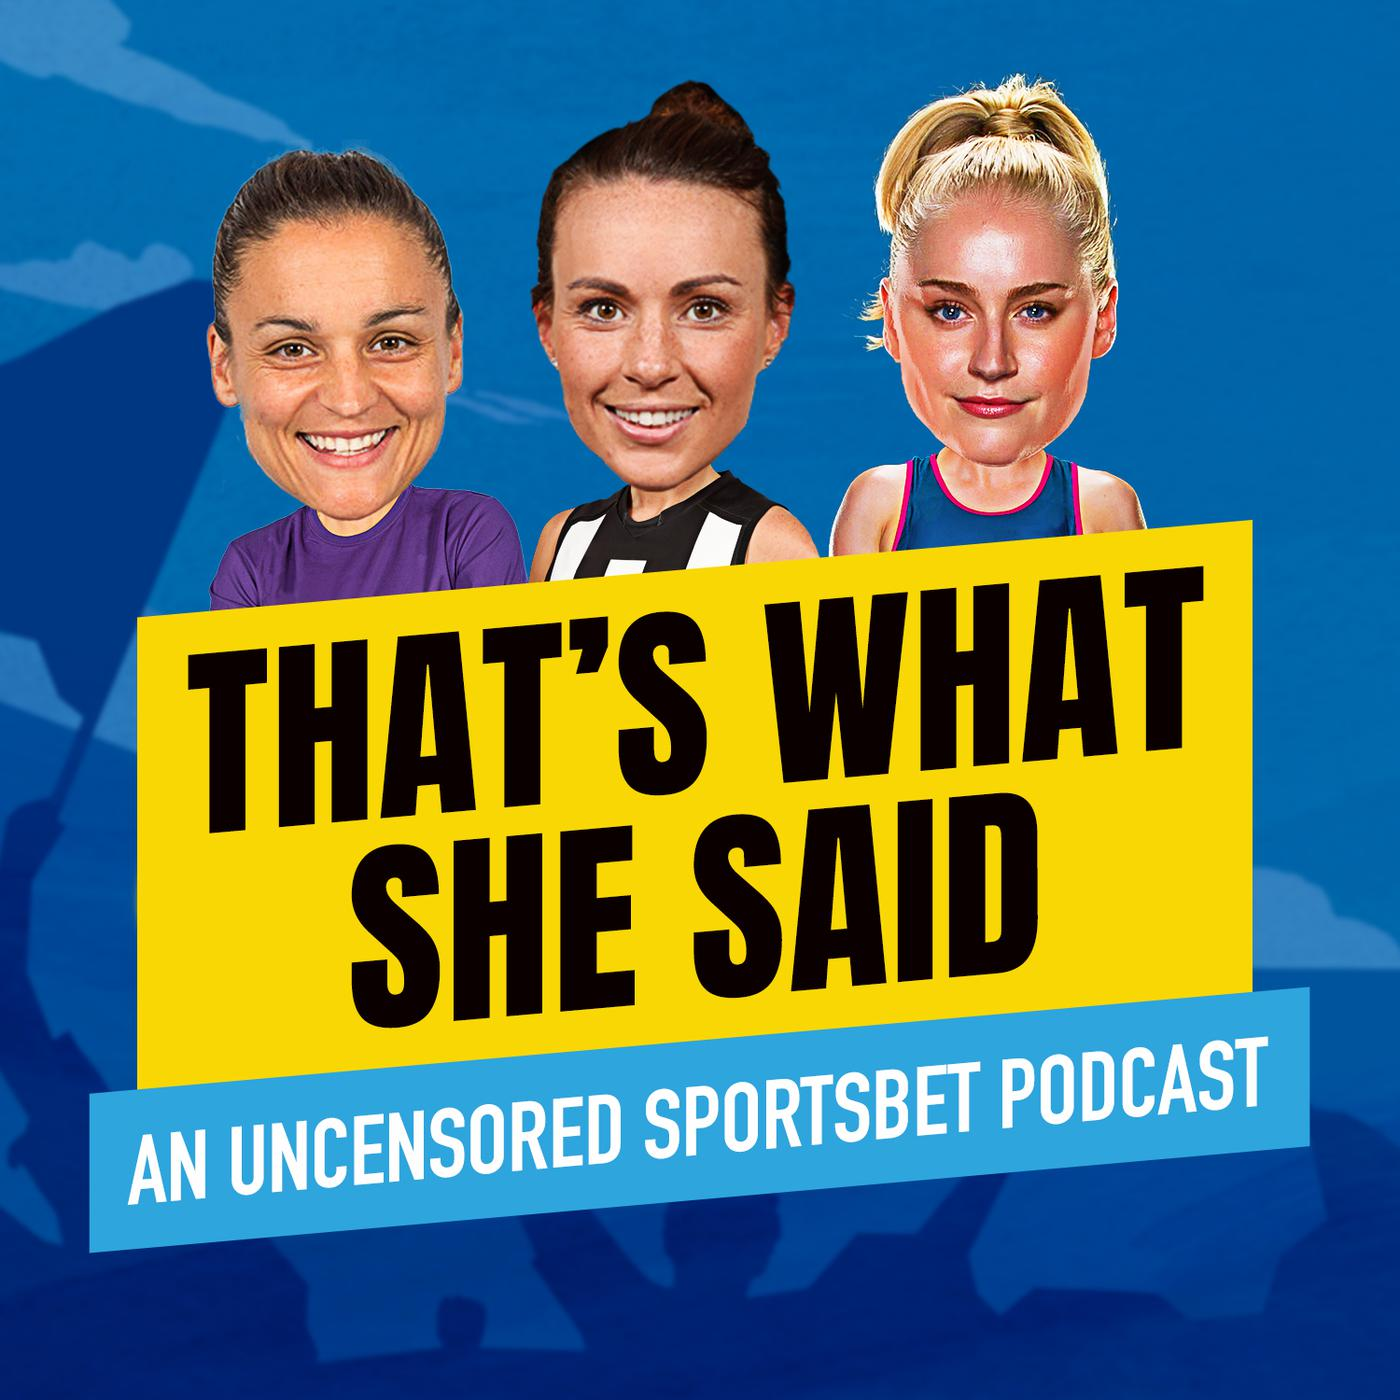 That's What She Said (podcast) - Sportsbet | Listen Notes